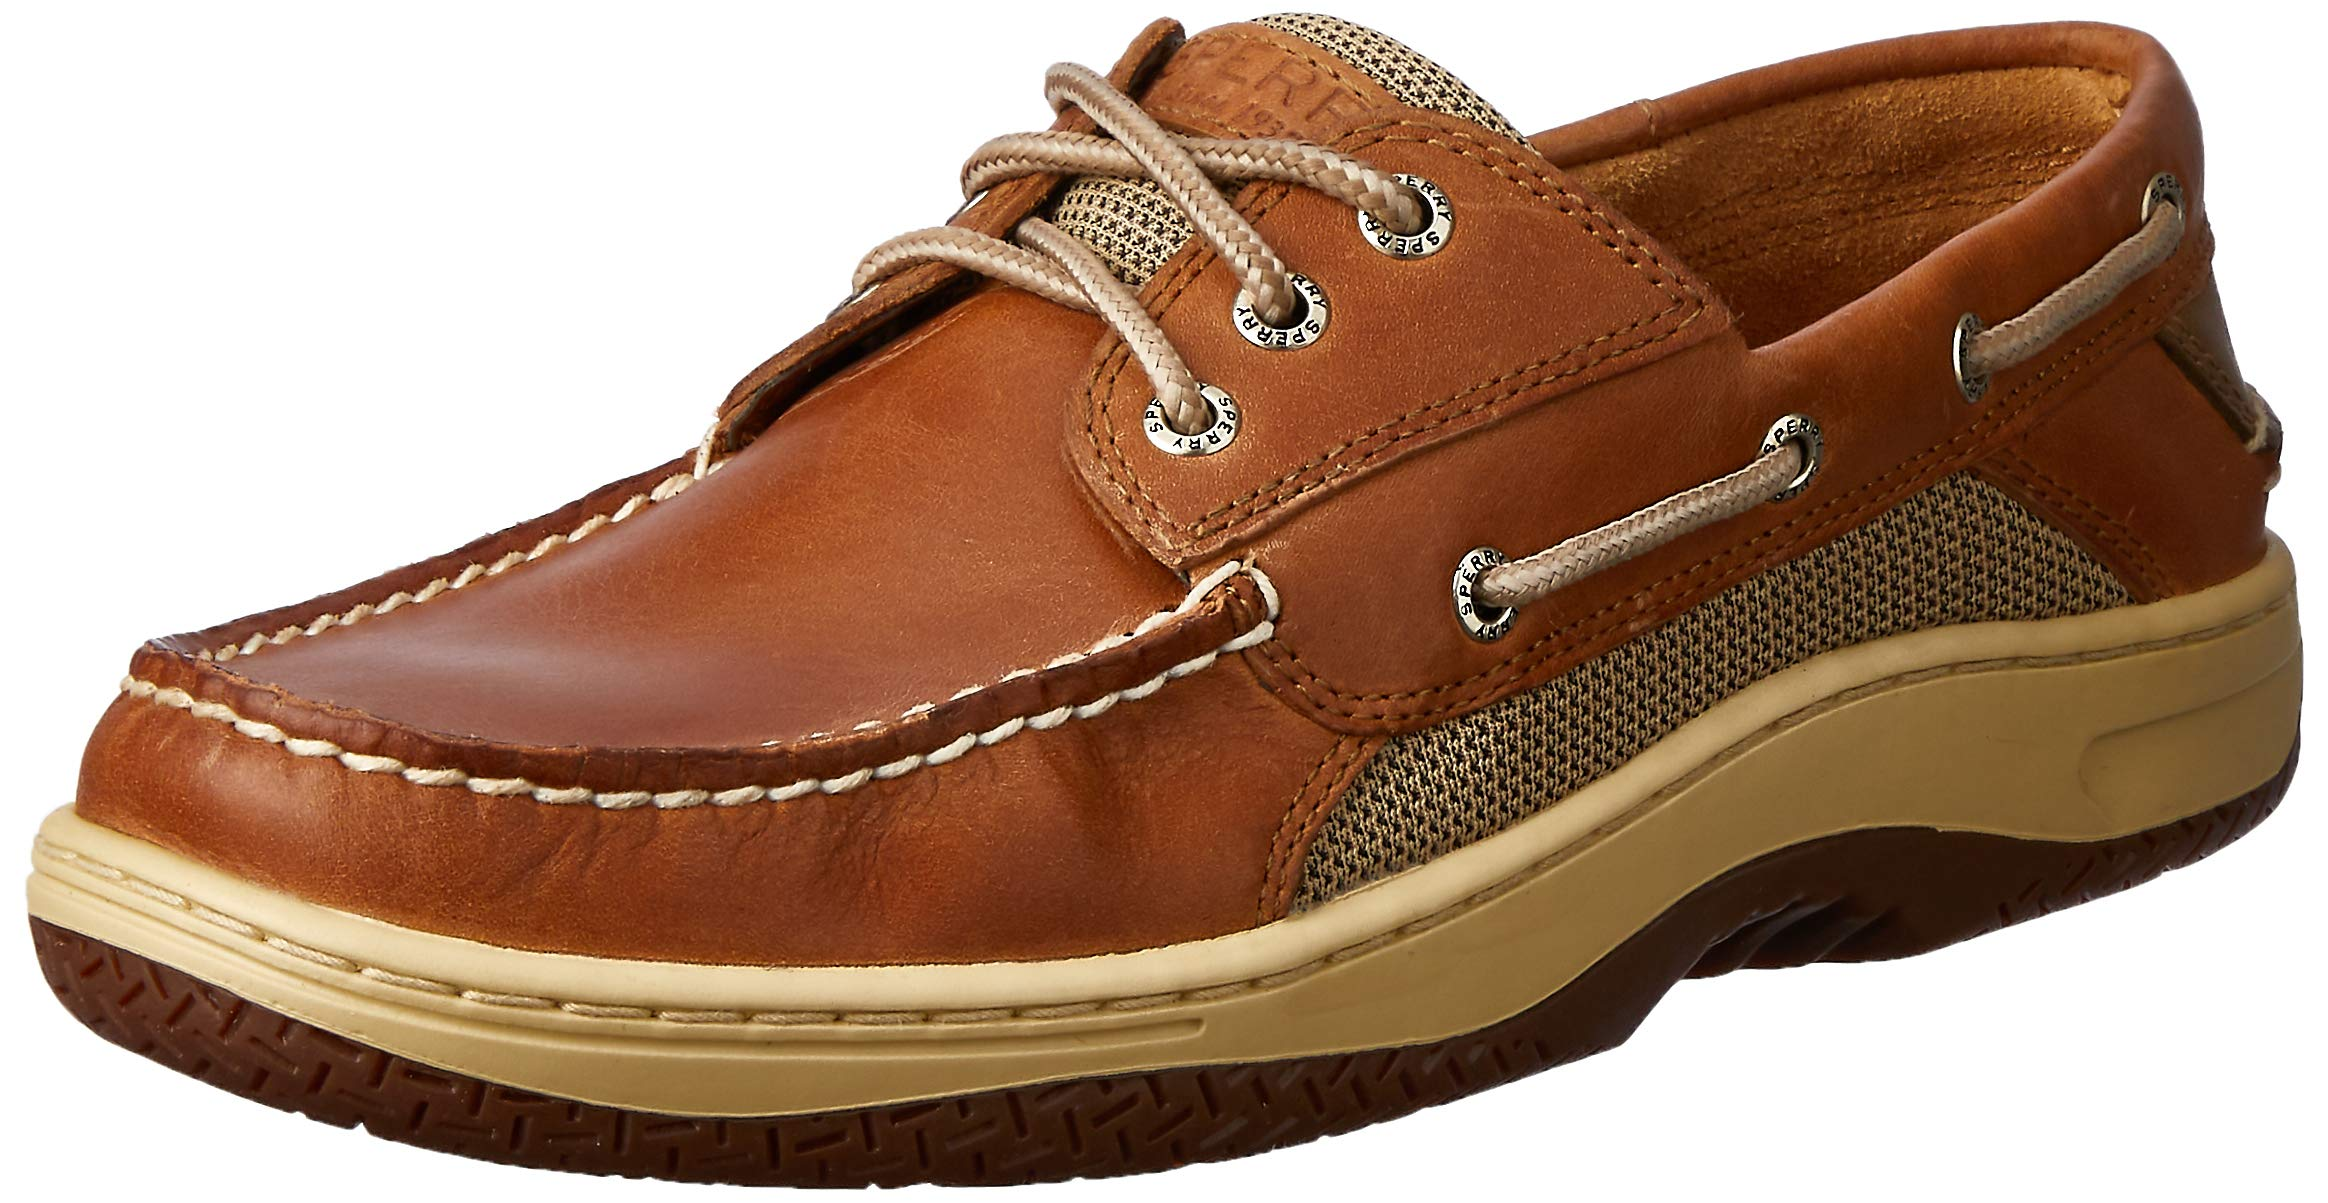 Sperry Mens Billfish 3-Eye Boat Shoe, Dark Tan, 11.5 by SPERRY